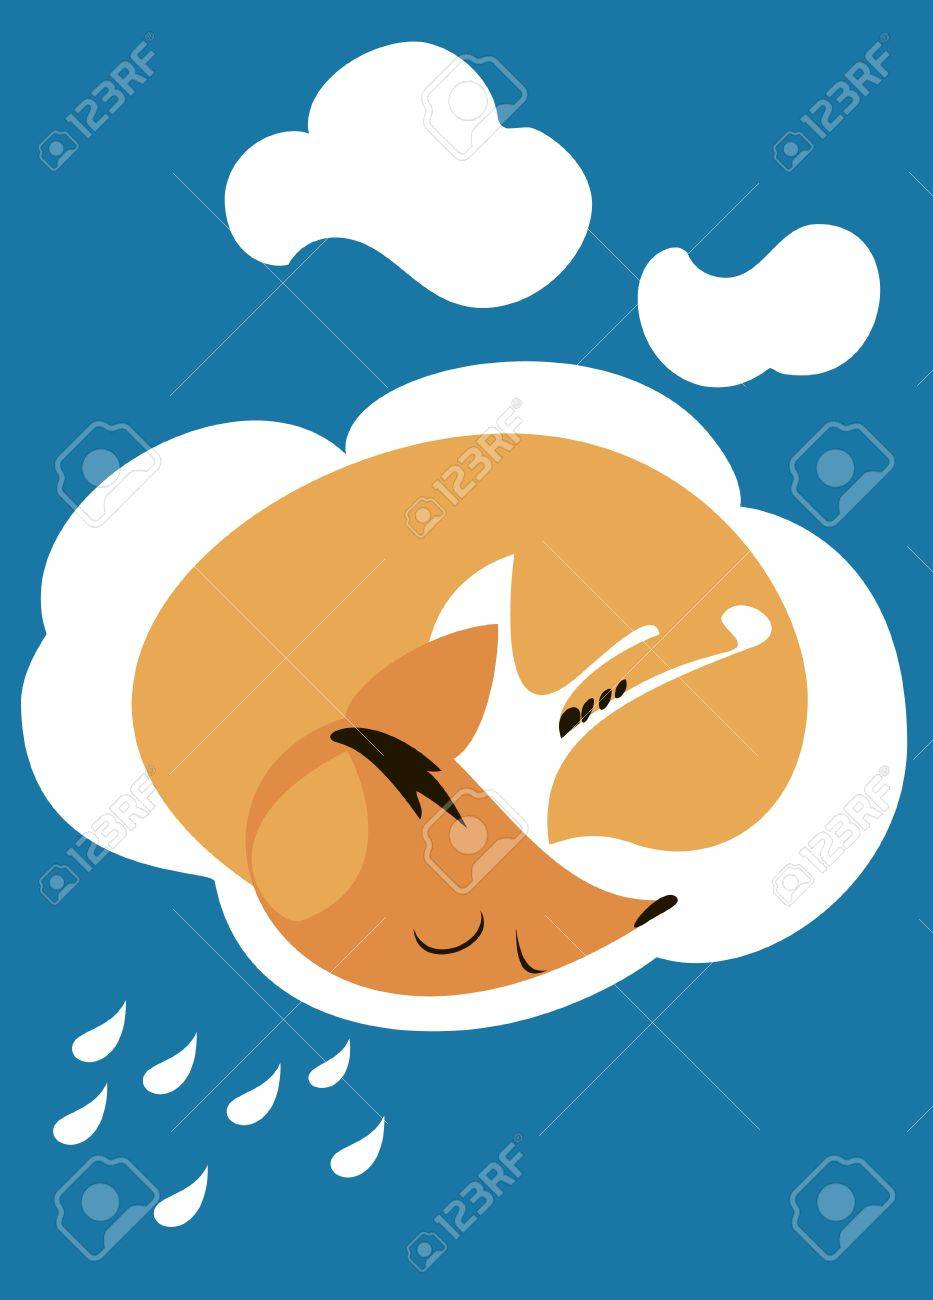 Little red fox sleeping peacefully on a white cloud Stock Vector - 17814745